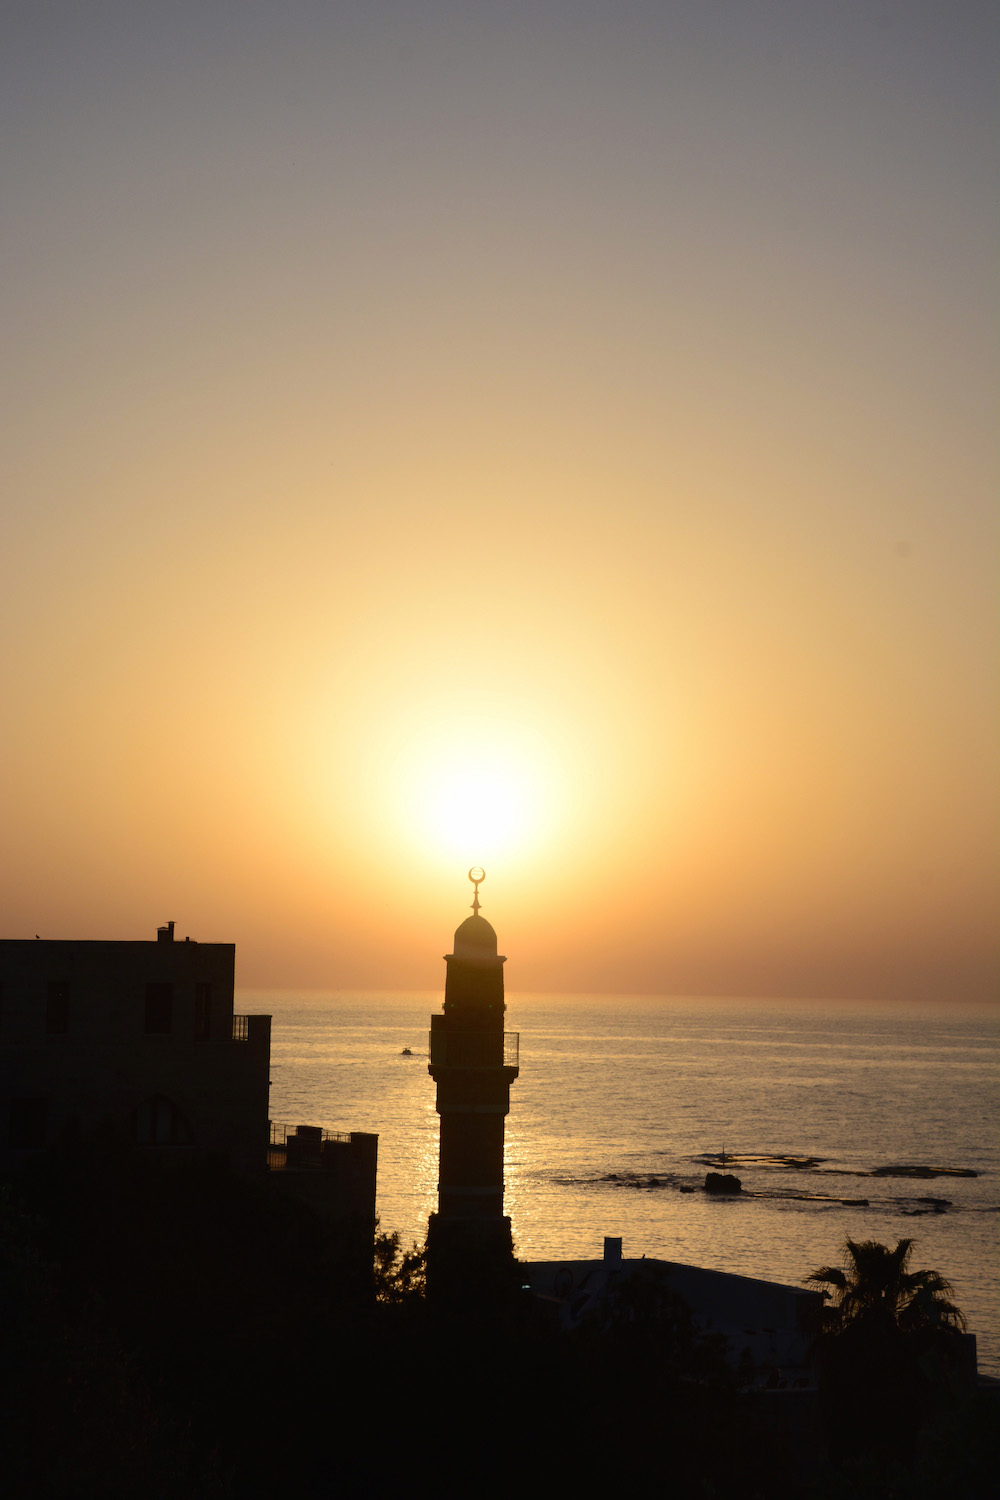 Sunset in Jaffa